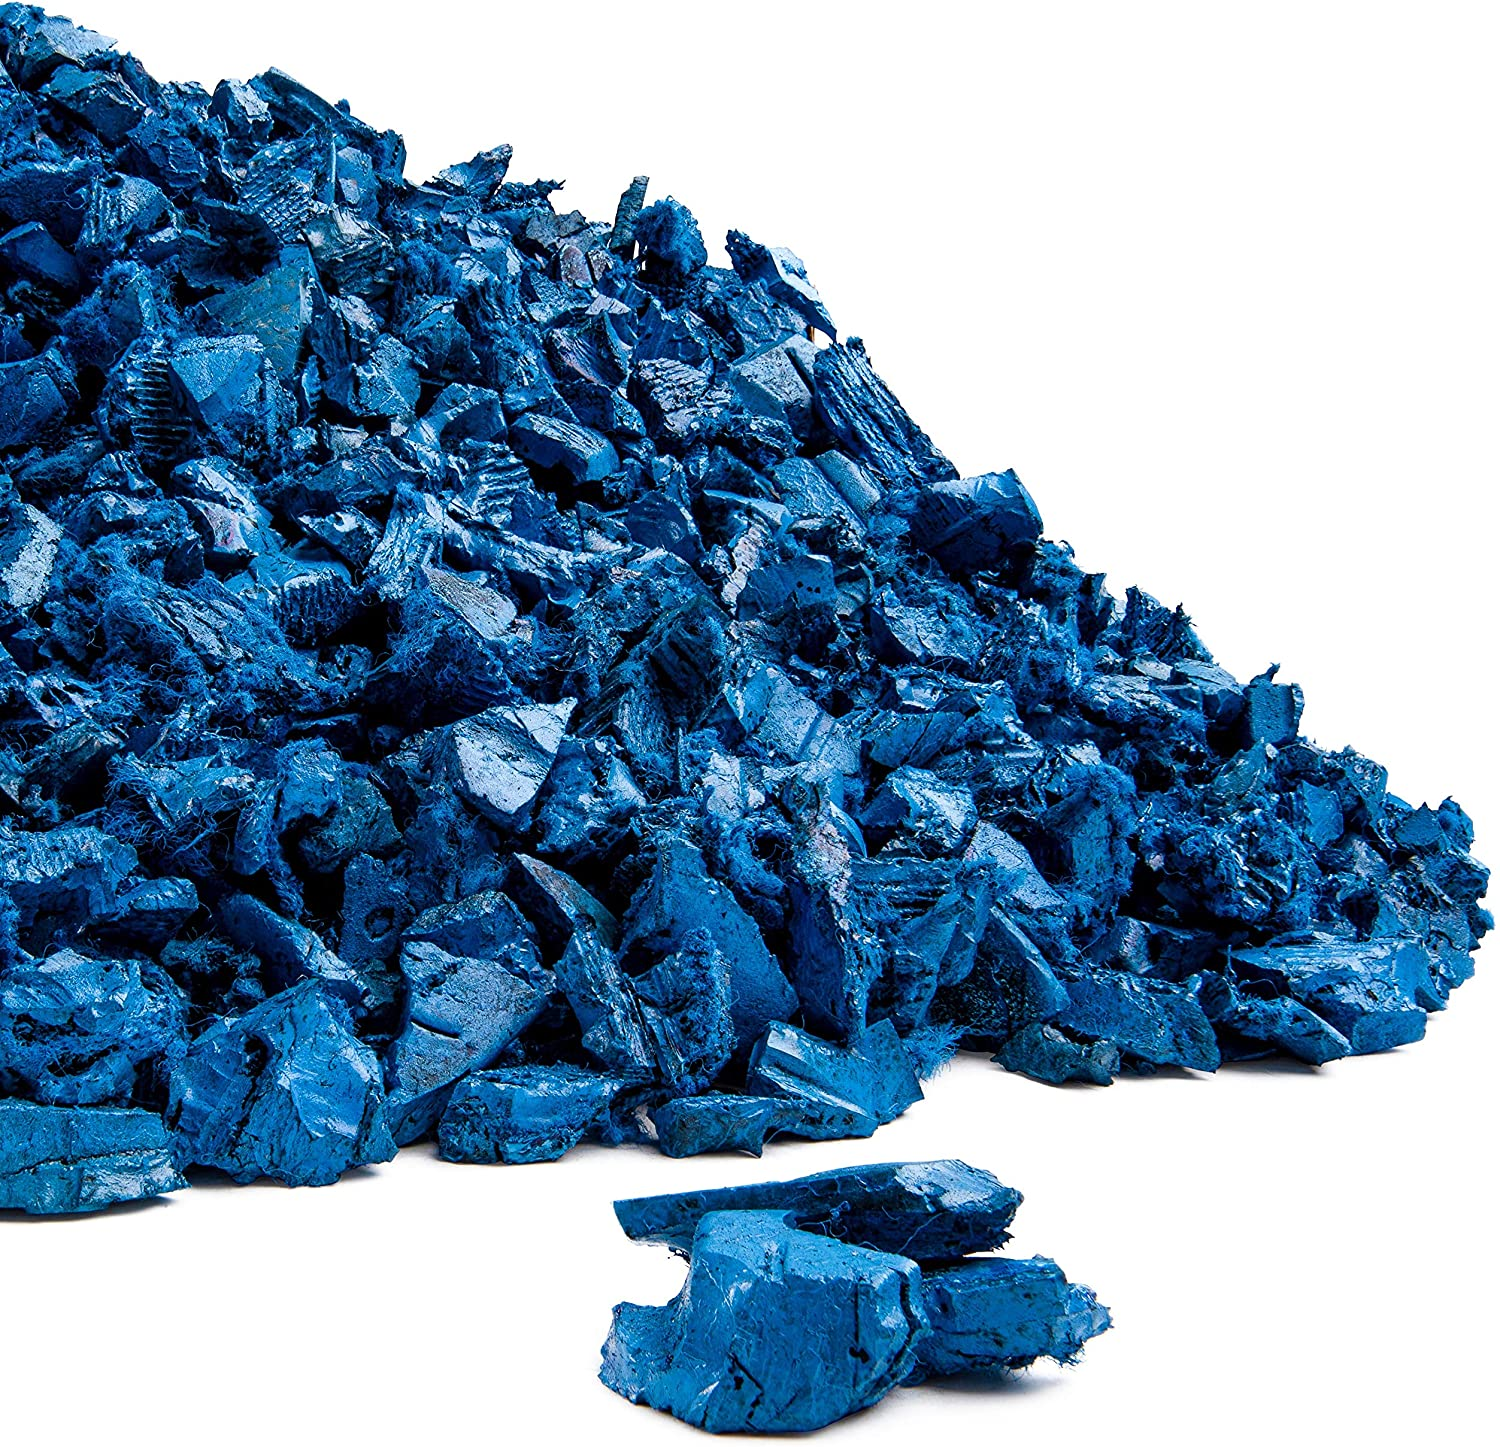 Playsafer Rubber Mulch Nuggets Protective Flooring for Playgrounds, Swing-Sets, Play Areas, and Landscaping (40 LBS - 1.55 CU. FT, Blue)